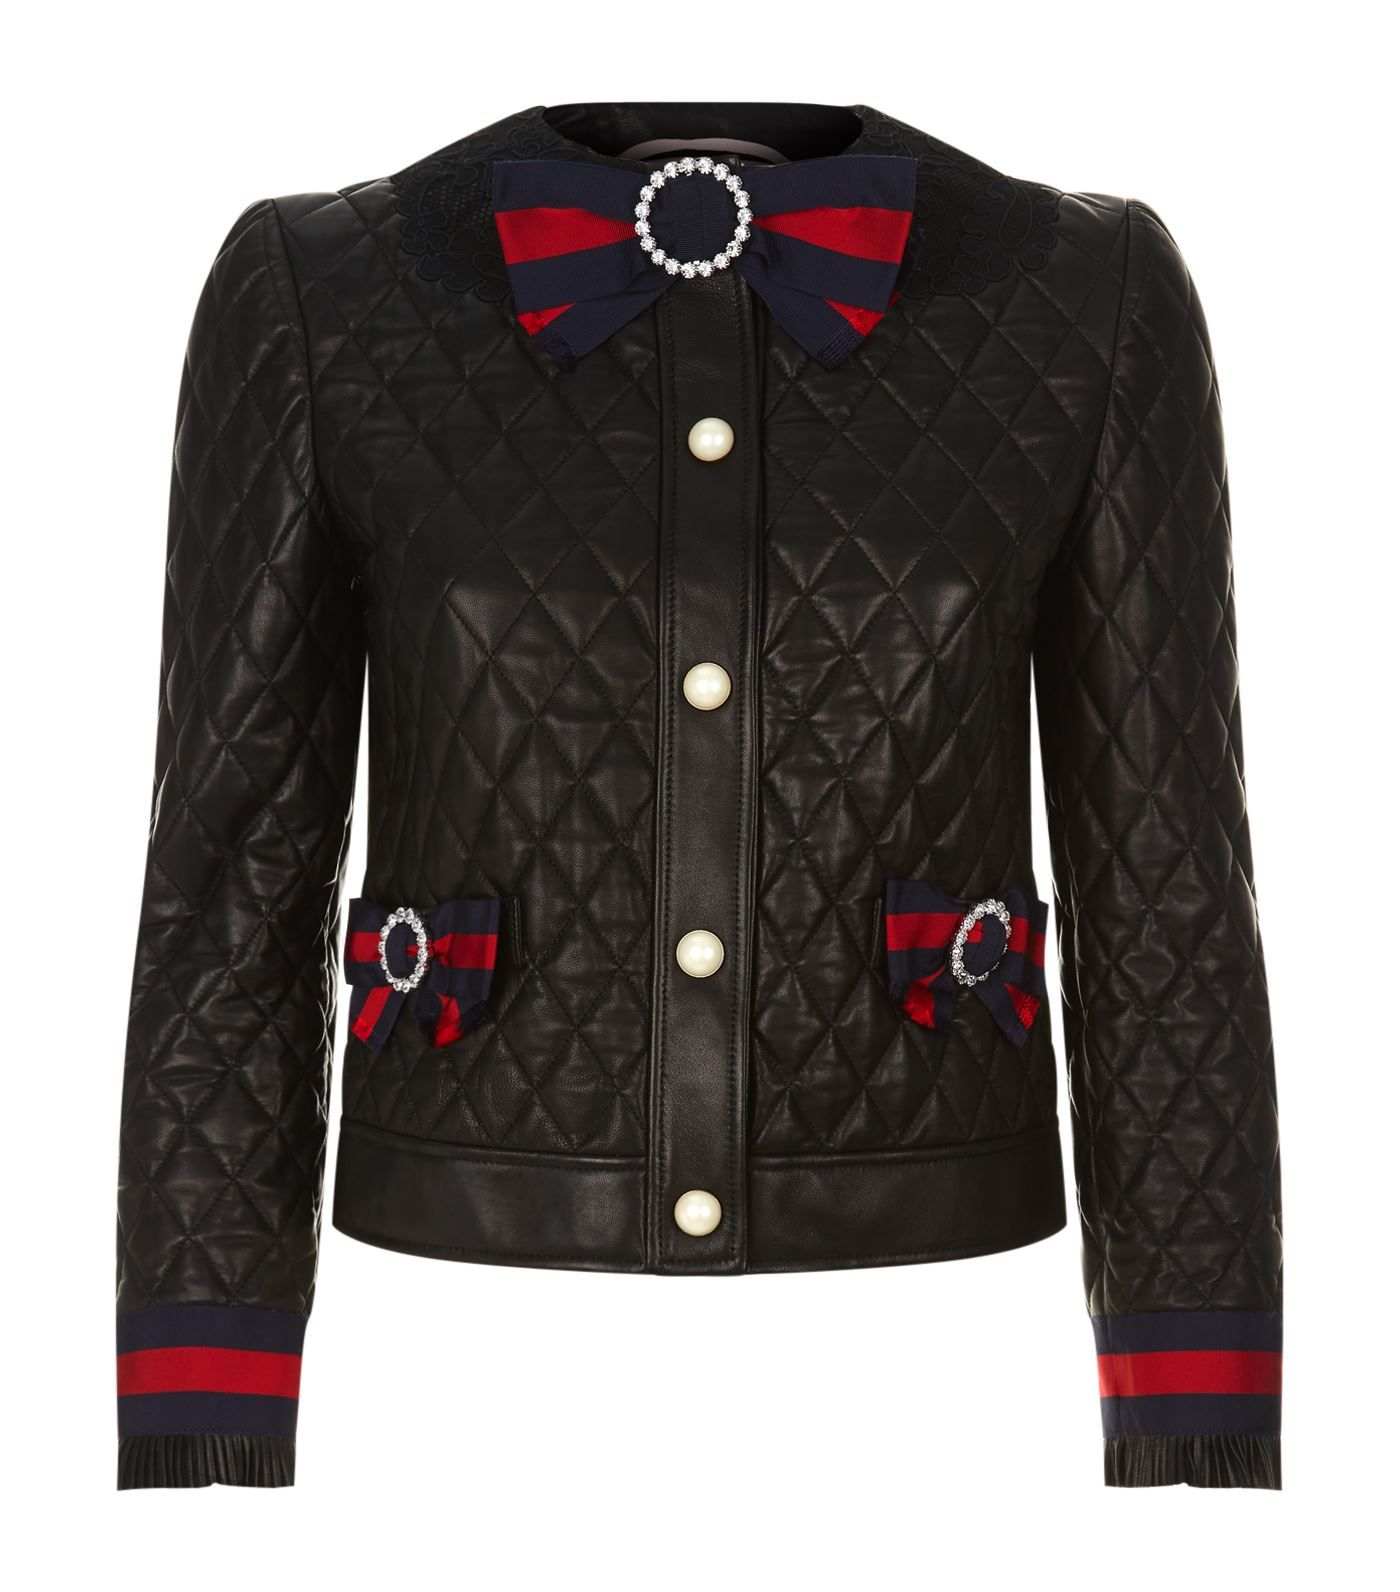 Gucci Quilt Leather Jacket